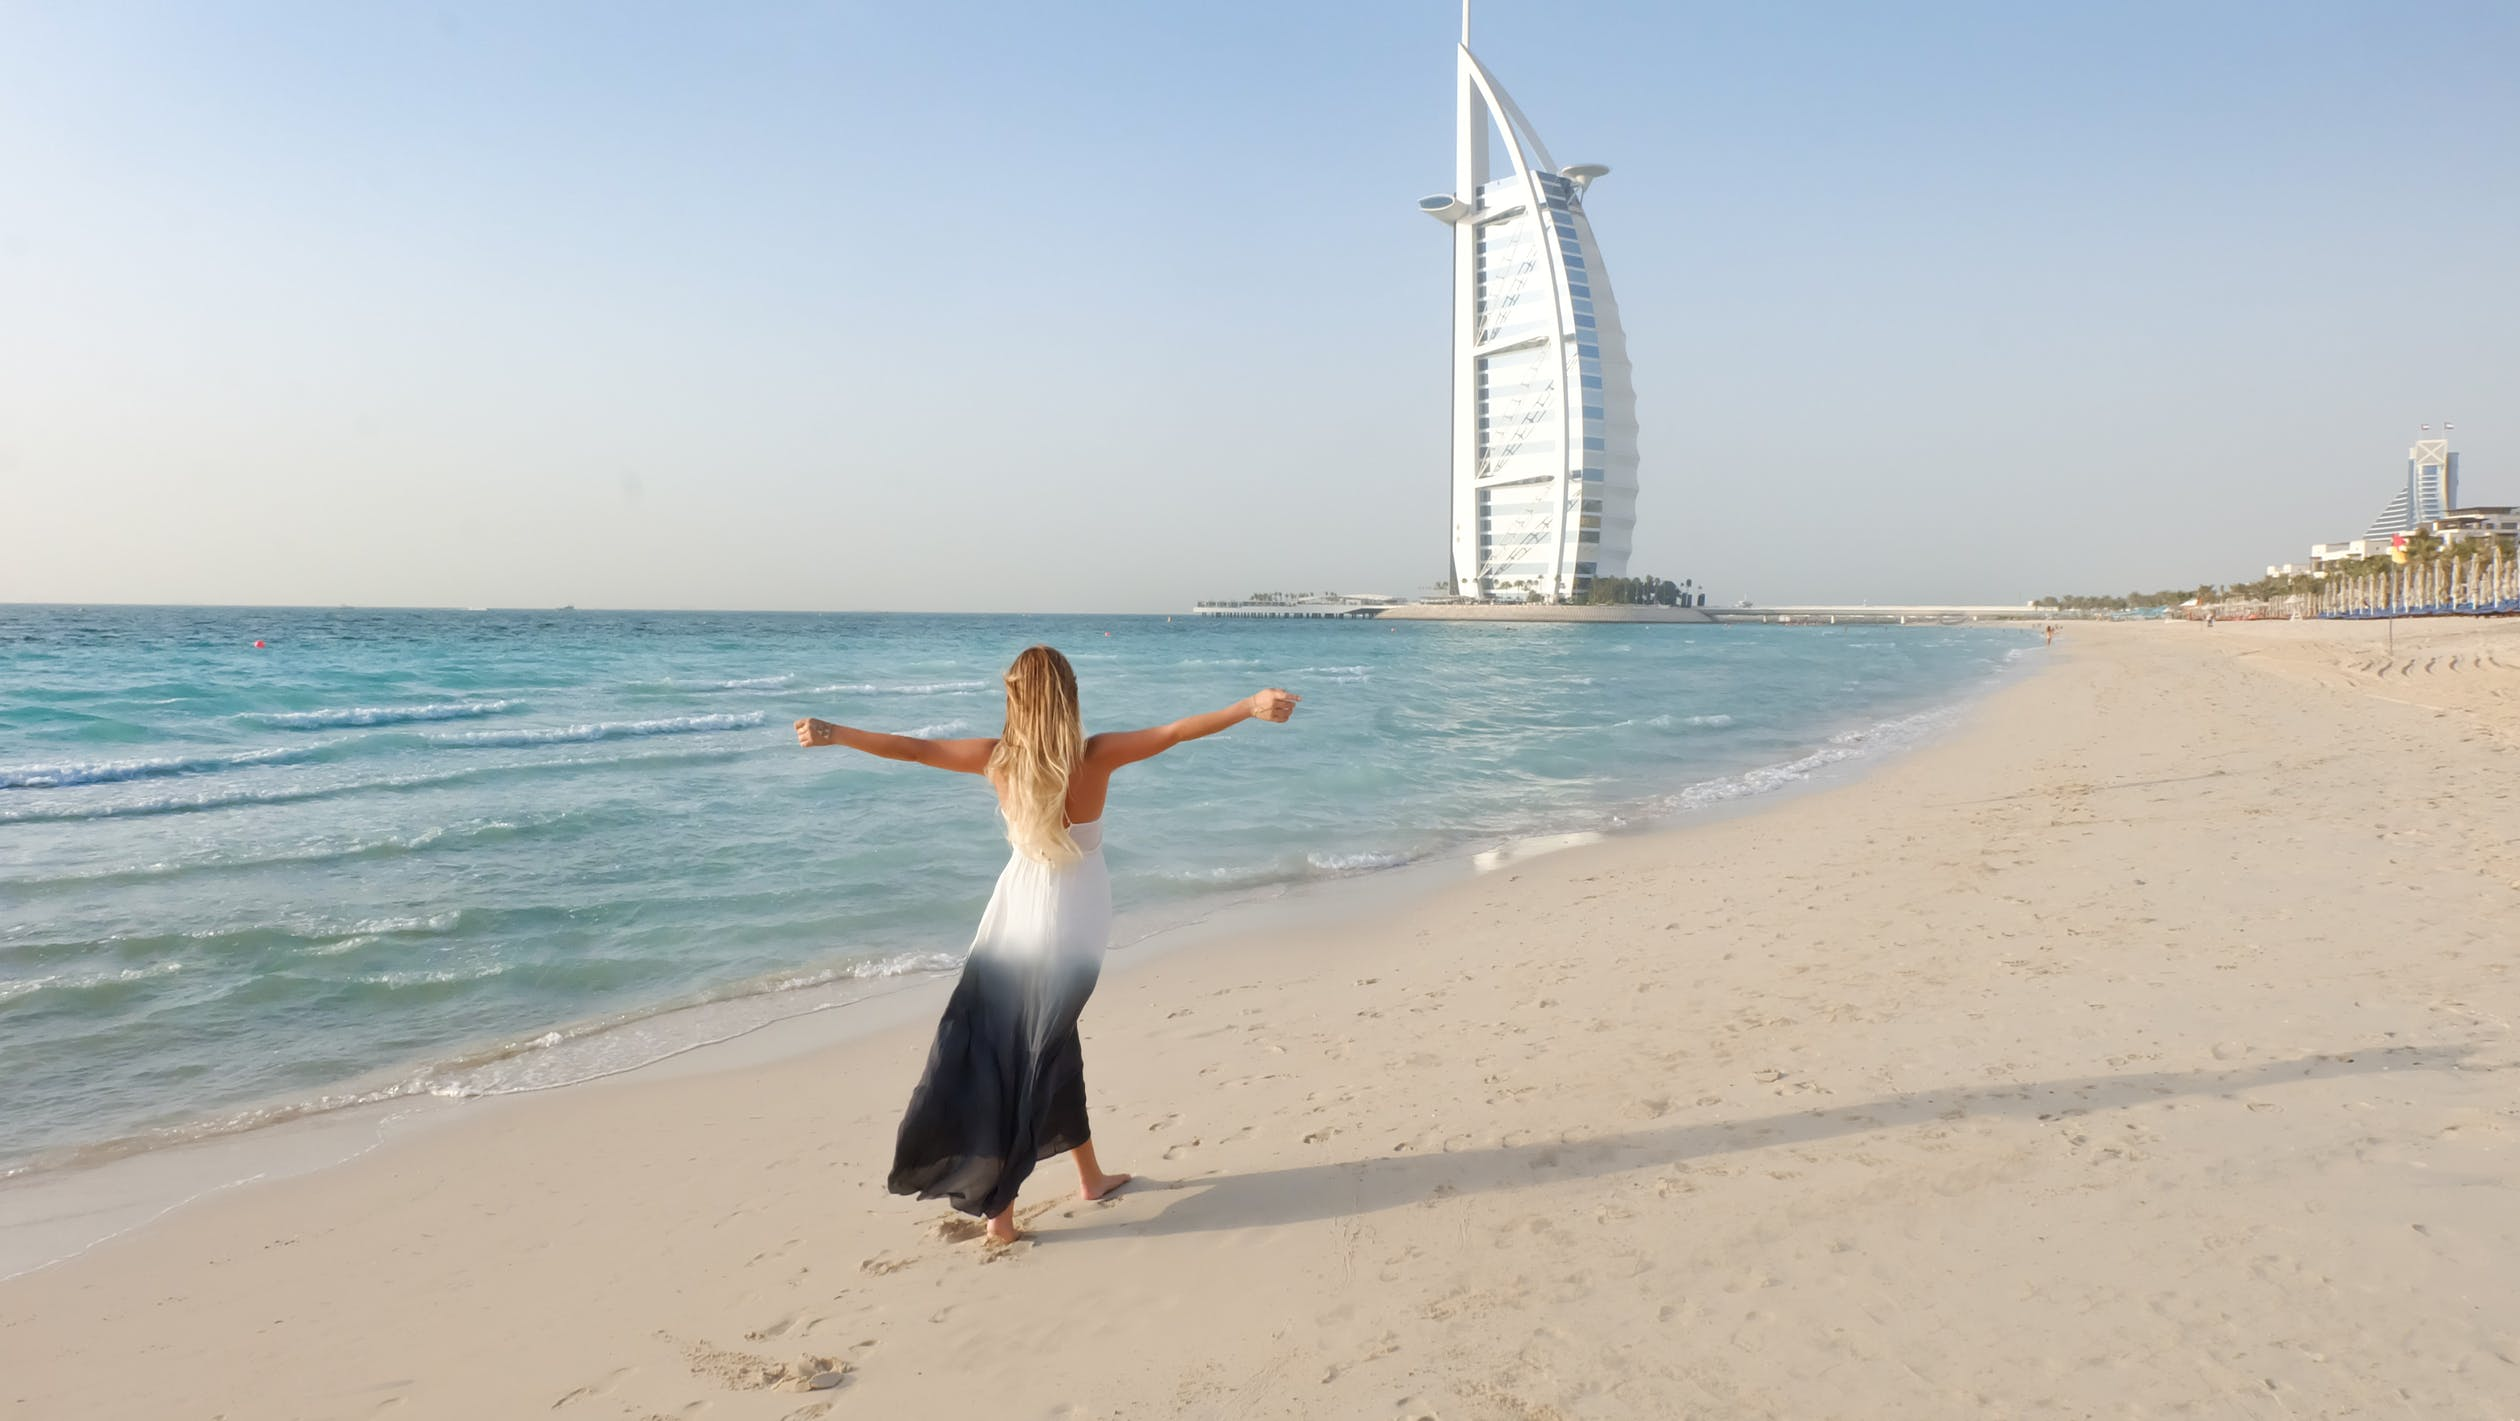 A 7-day tour plan for exploring Dubai